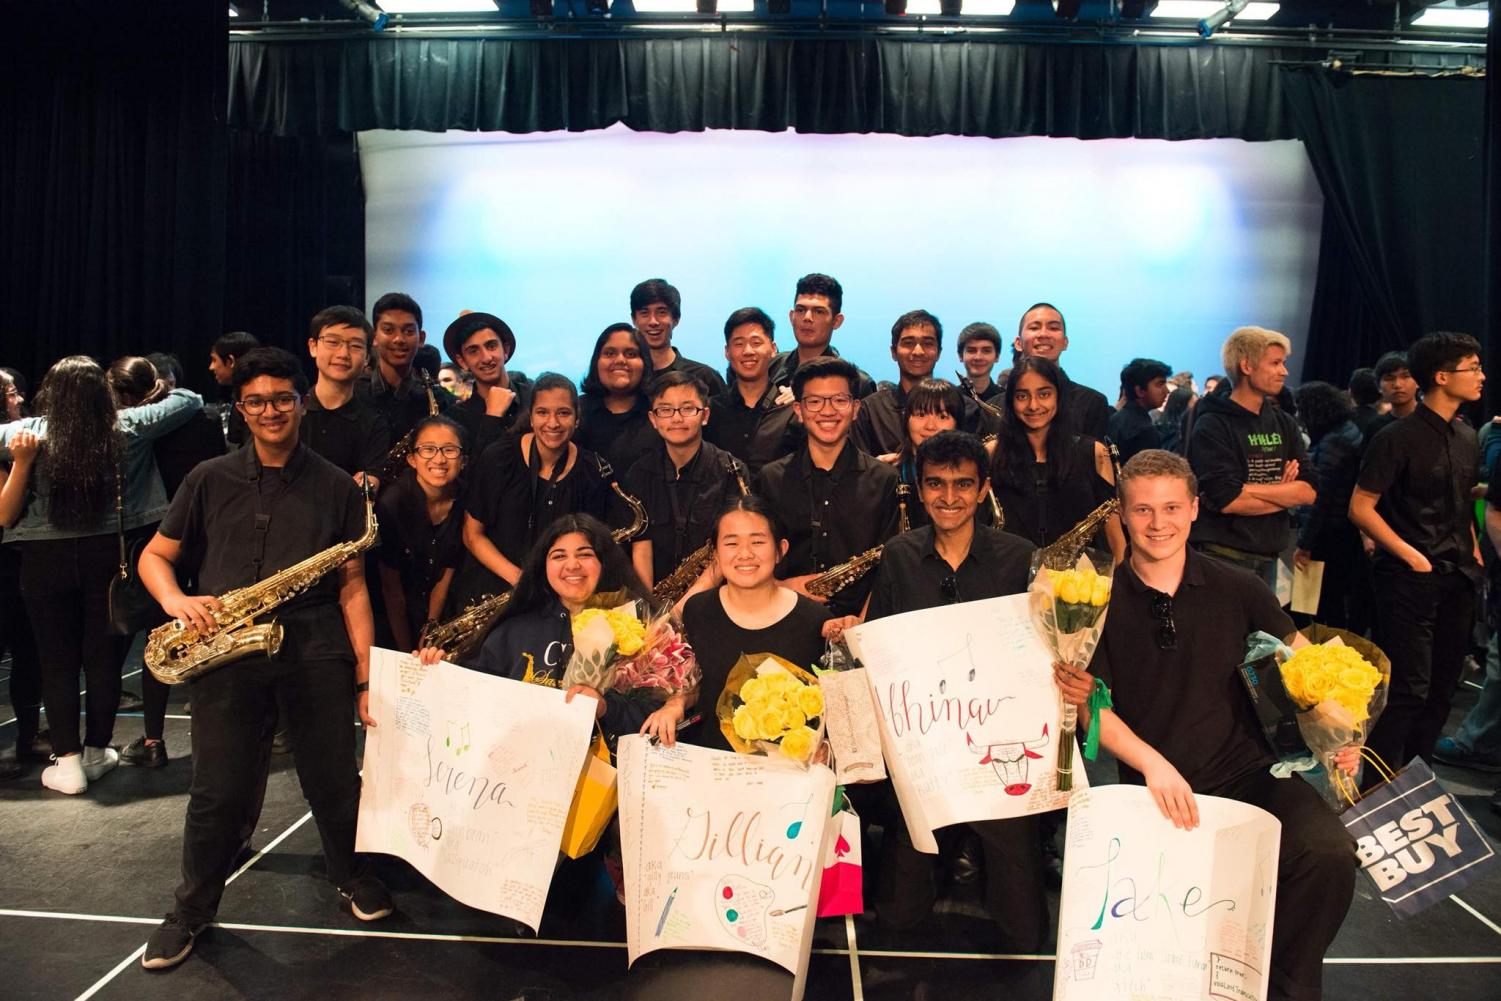 CHS Marching Band saxophone section celebrates their graduating seniors at the visual concert. Picture taken by Audrey Hou.